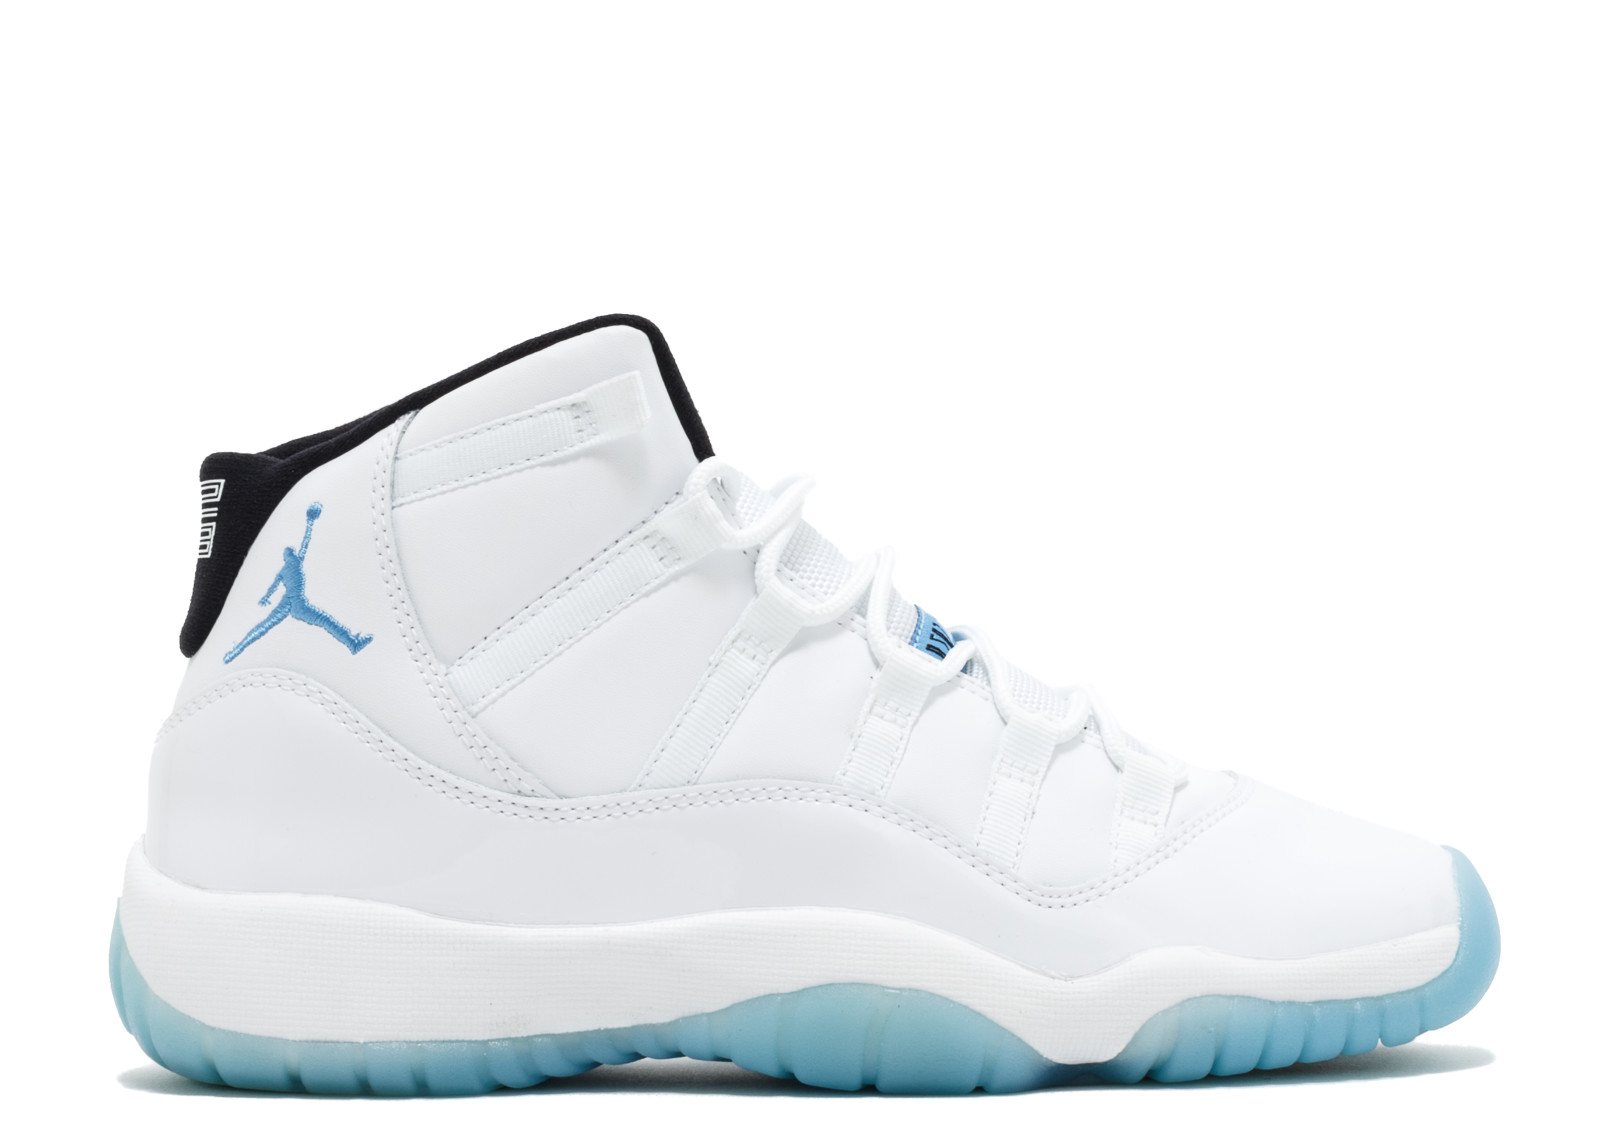 air jordan 11 legend blue gs real vs fake rolex